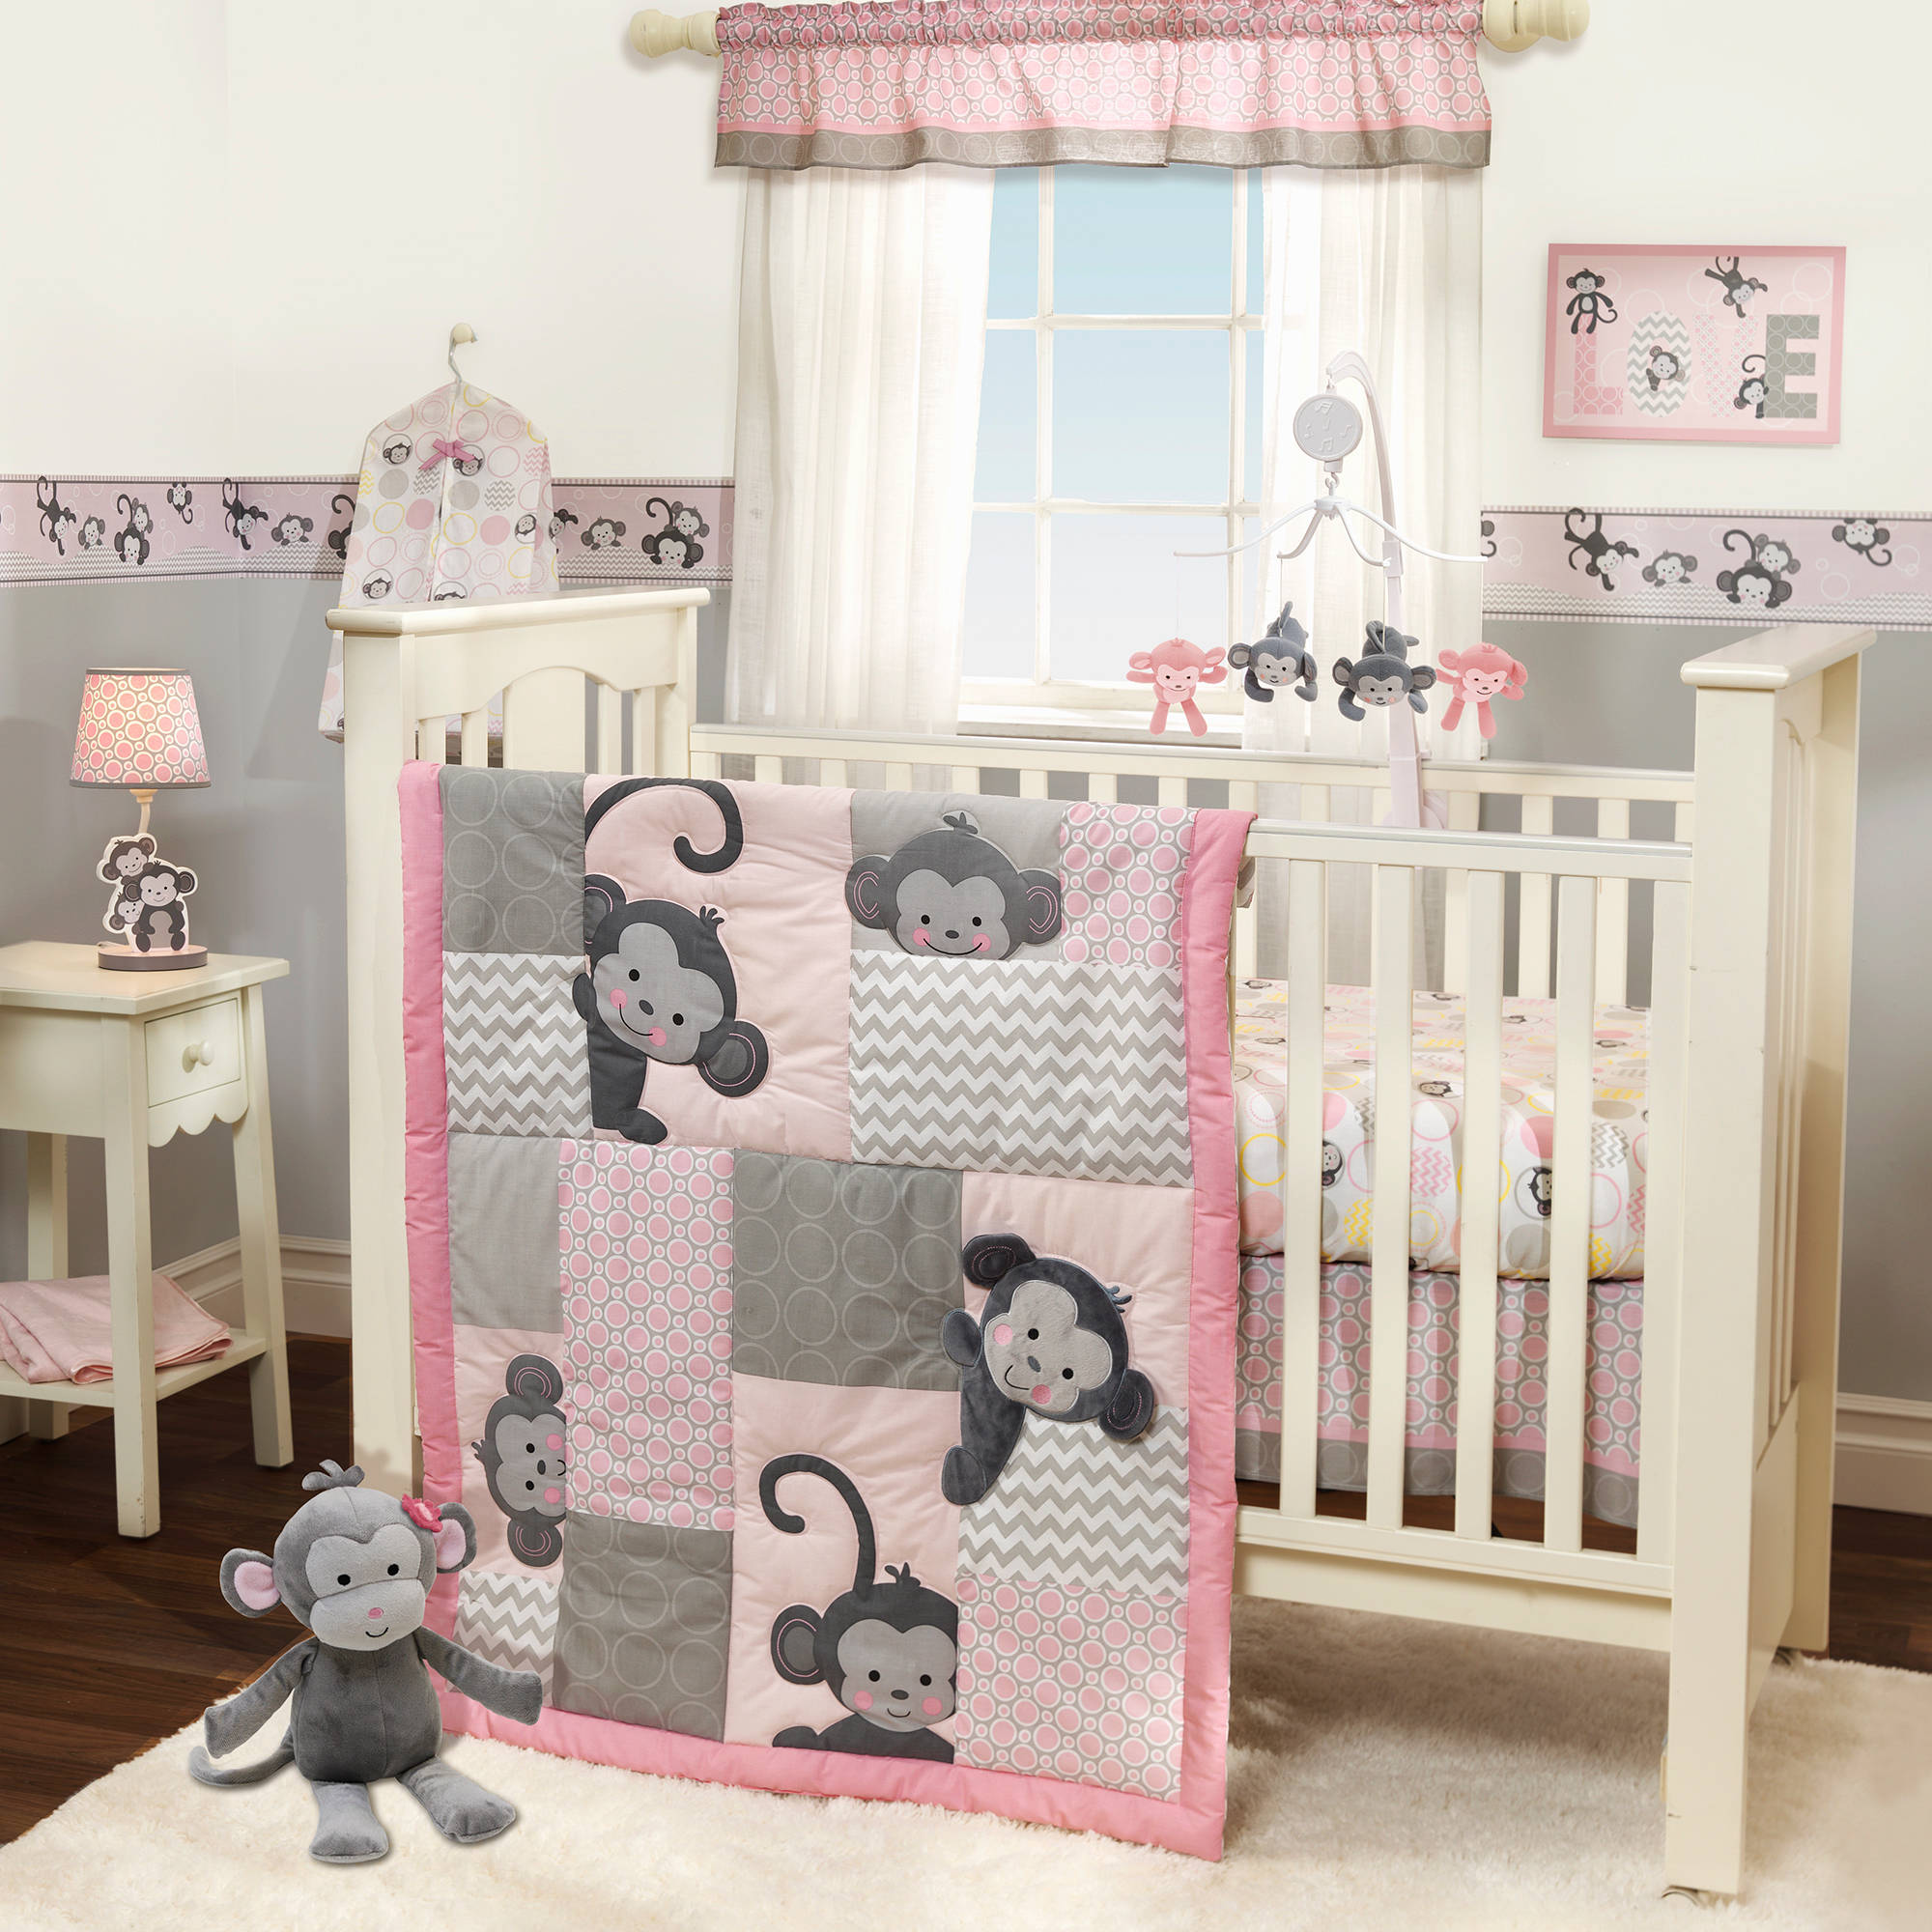 Useful tips for buying the best crib sets